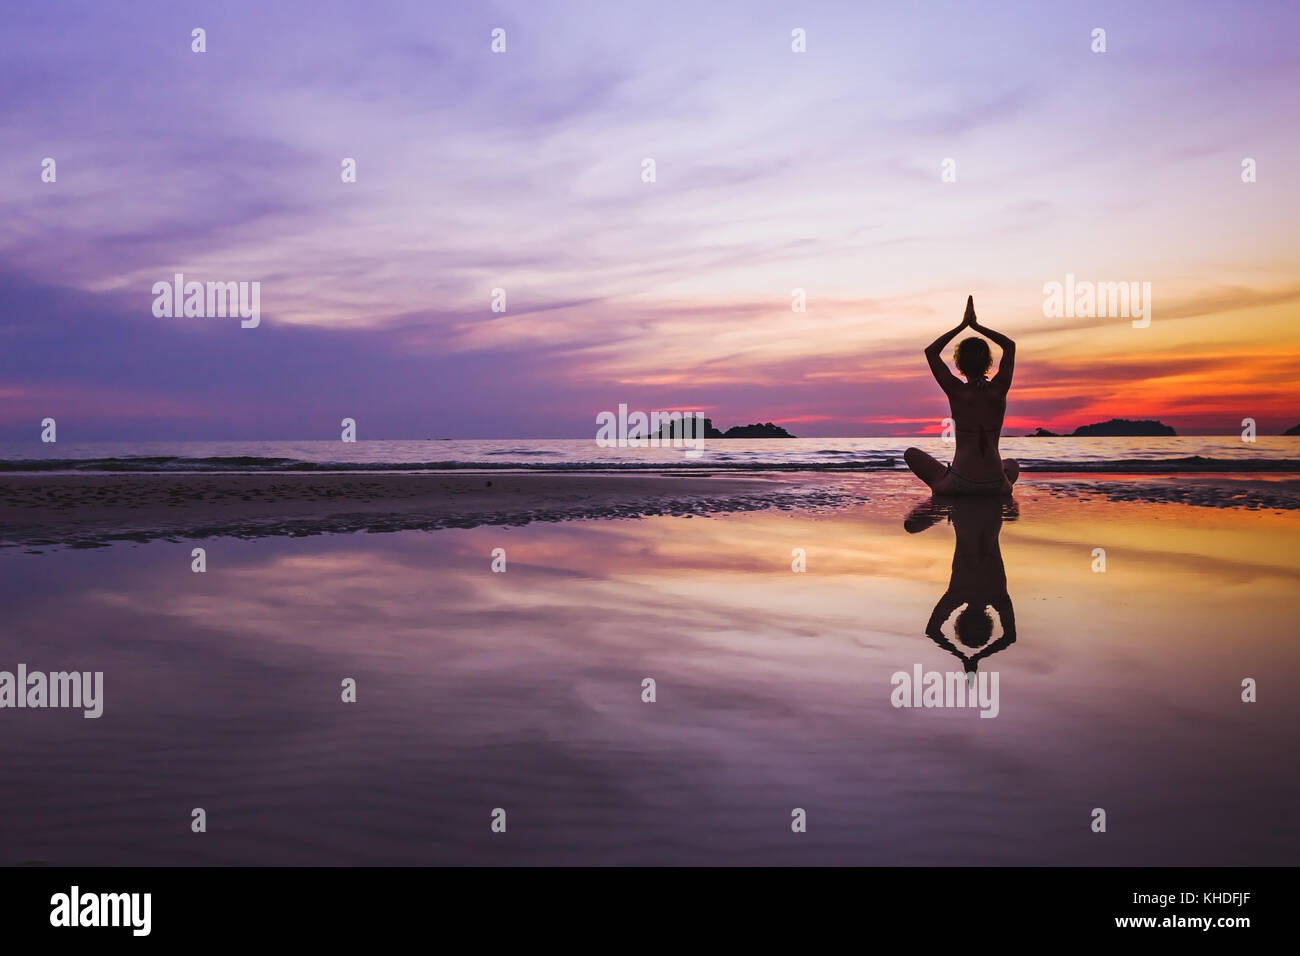 mindful meditation background, silhouette of woman doing yoga on the beach at sunset with reflection - Stock Image